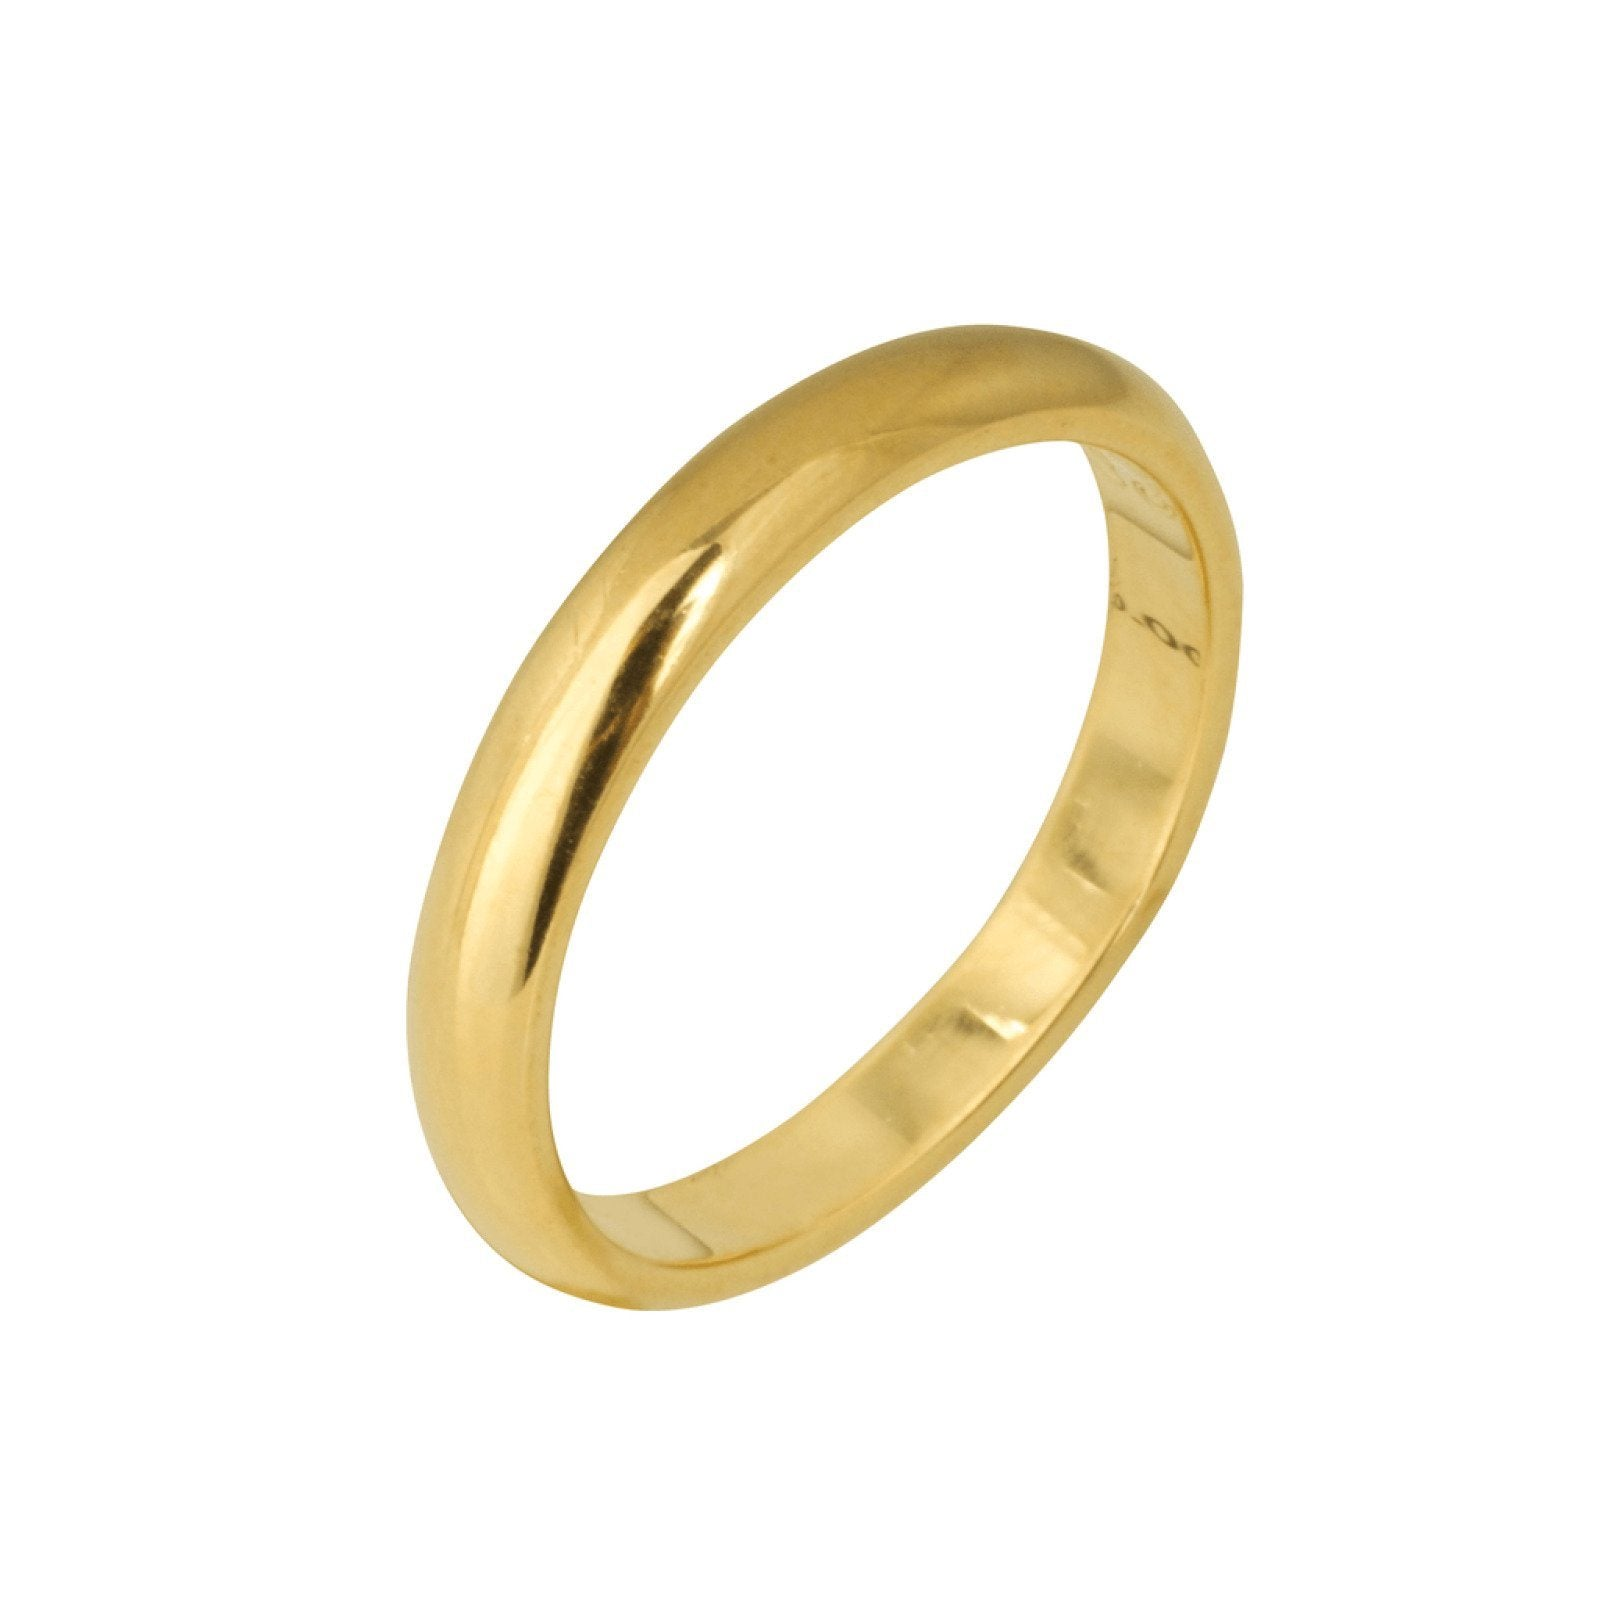 Cartier wedding band oliver jewellery cartier wedding band rings junglespirit Images